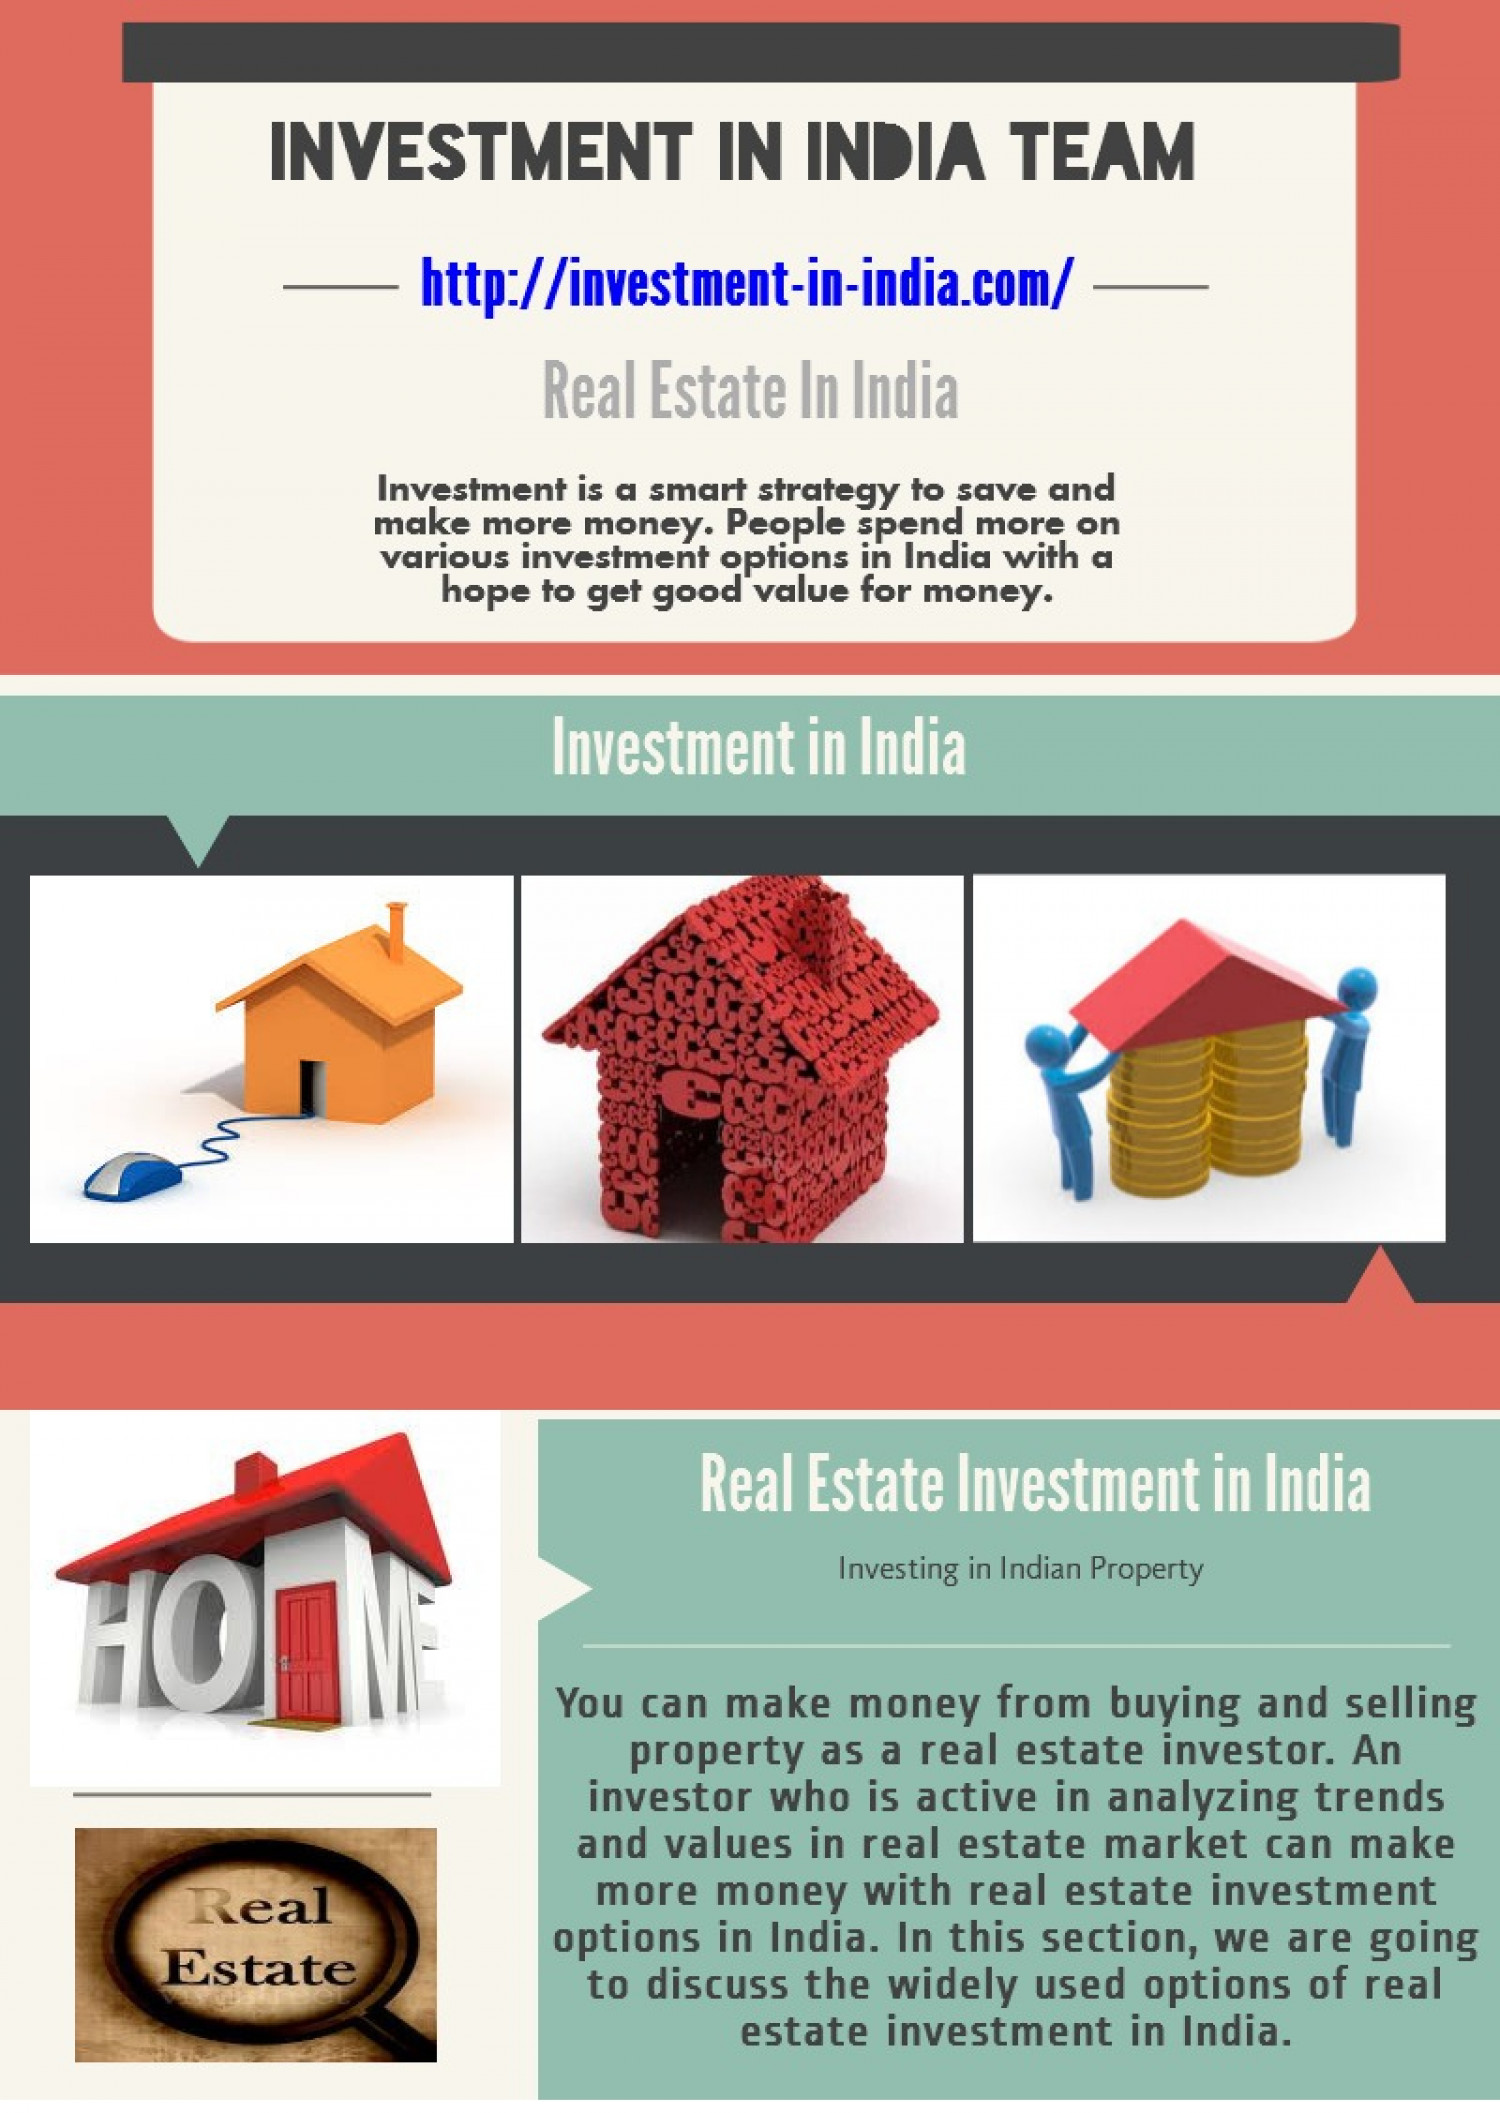 real estate market in india Realty fact is india leading real estate magazine, property news site, reviews blog covering real estate & construction industry by market expert's advice.